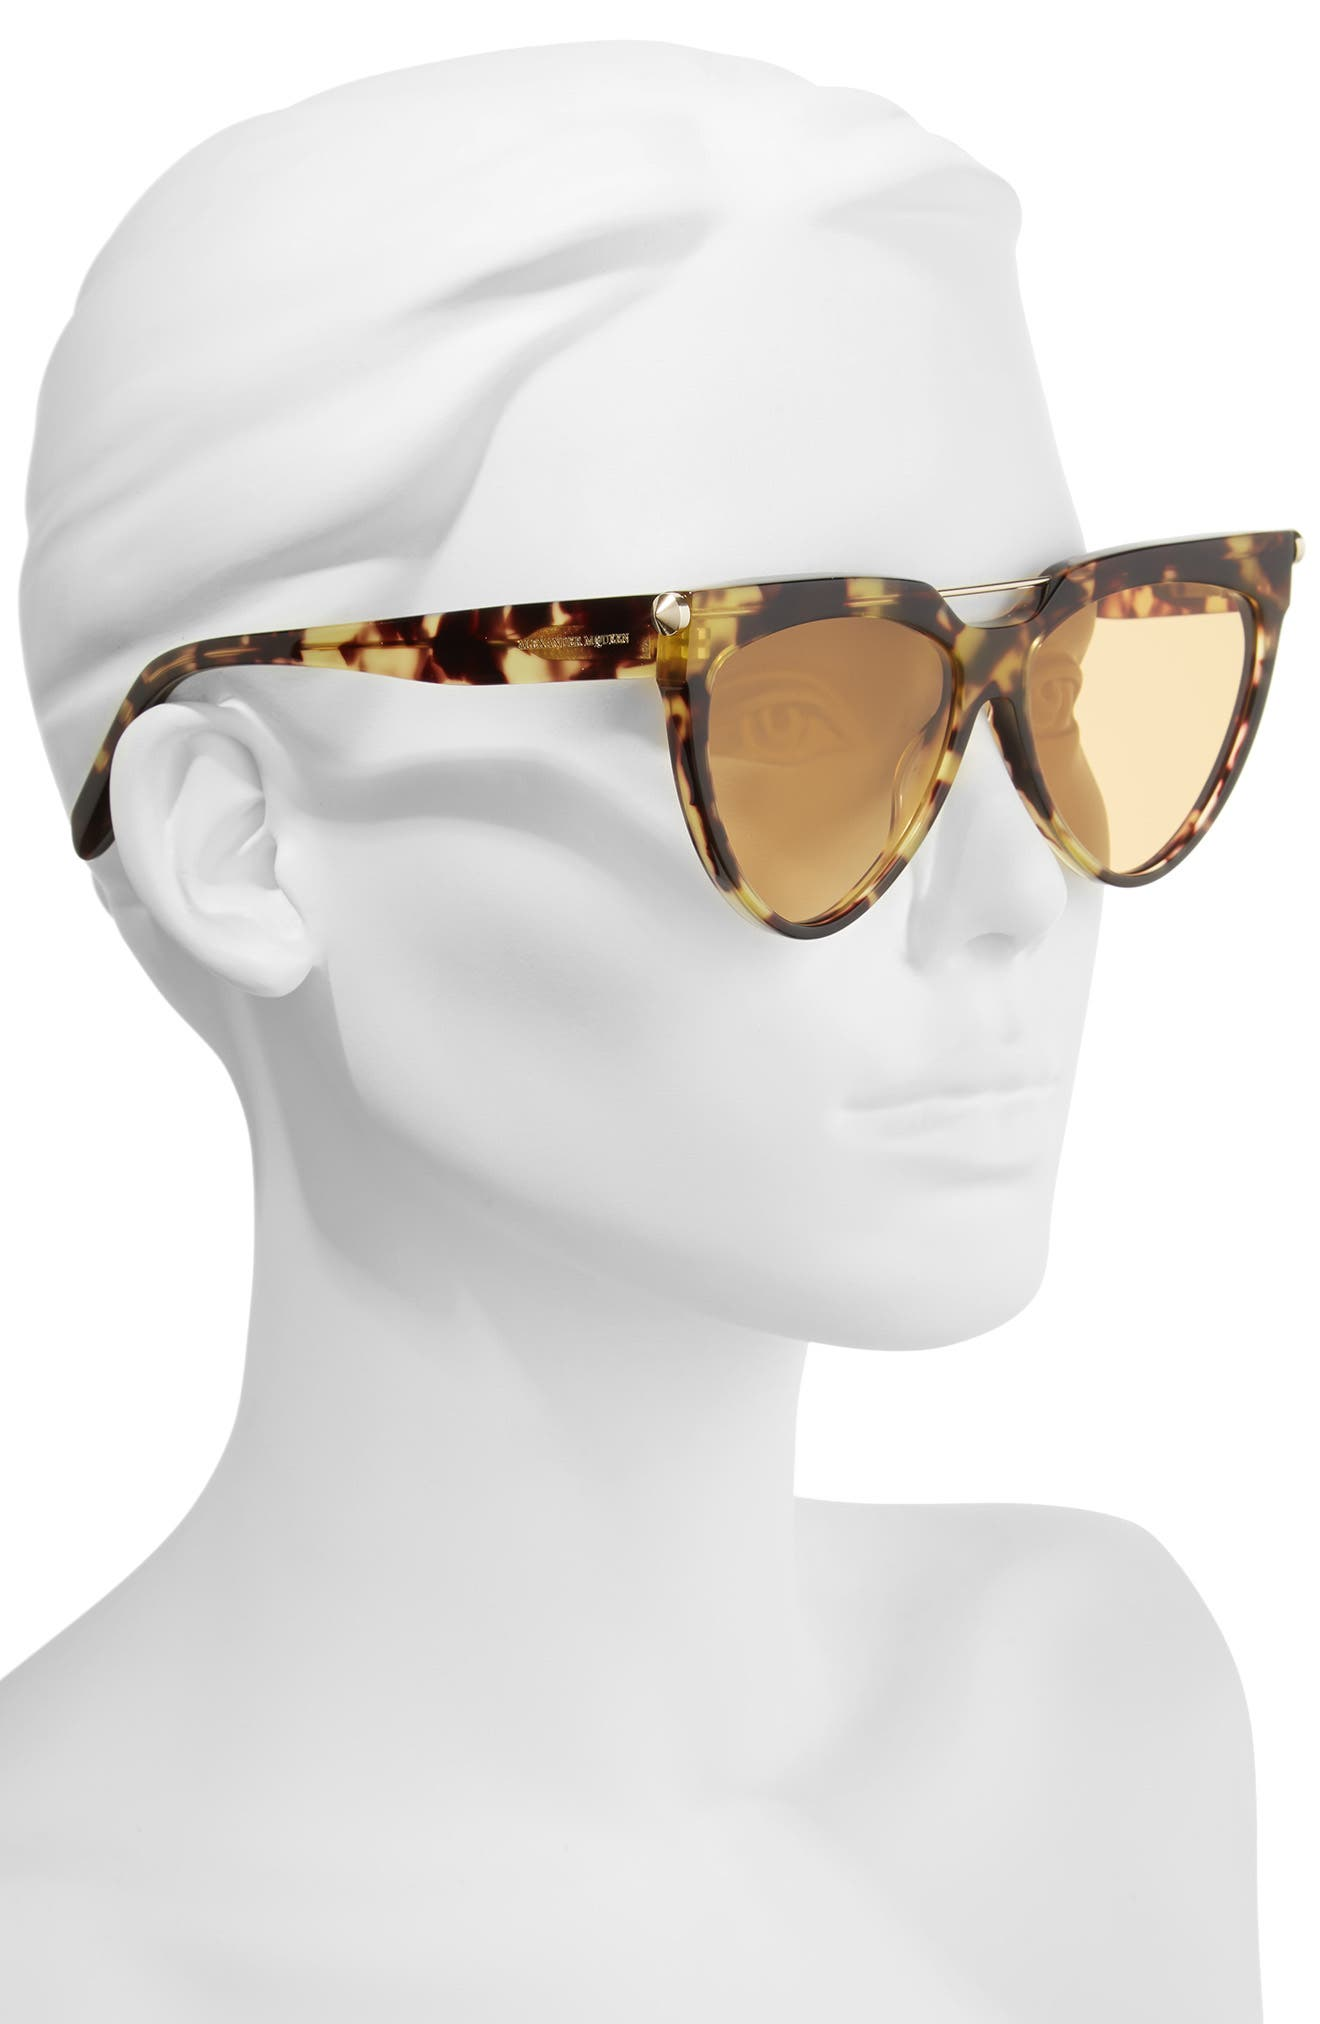 58mm Cat Eye Sunglasses,                             Alternate thumbnail 2, color,                             Avana